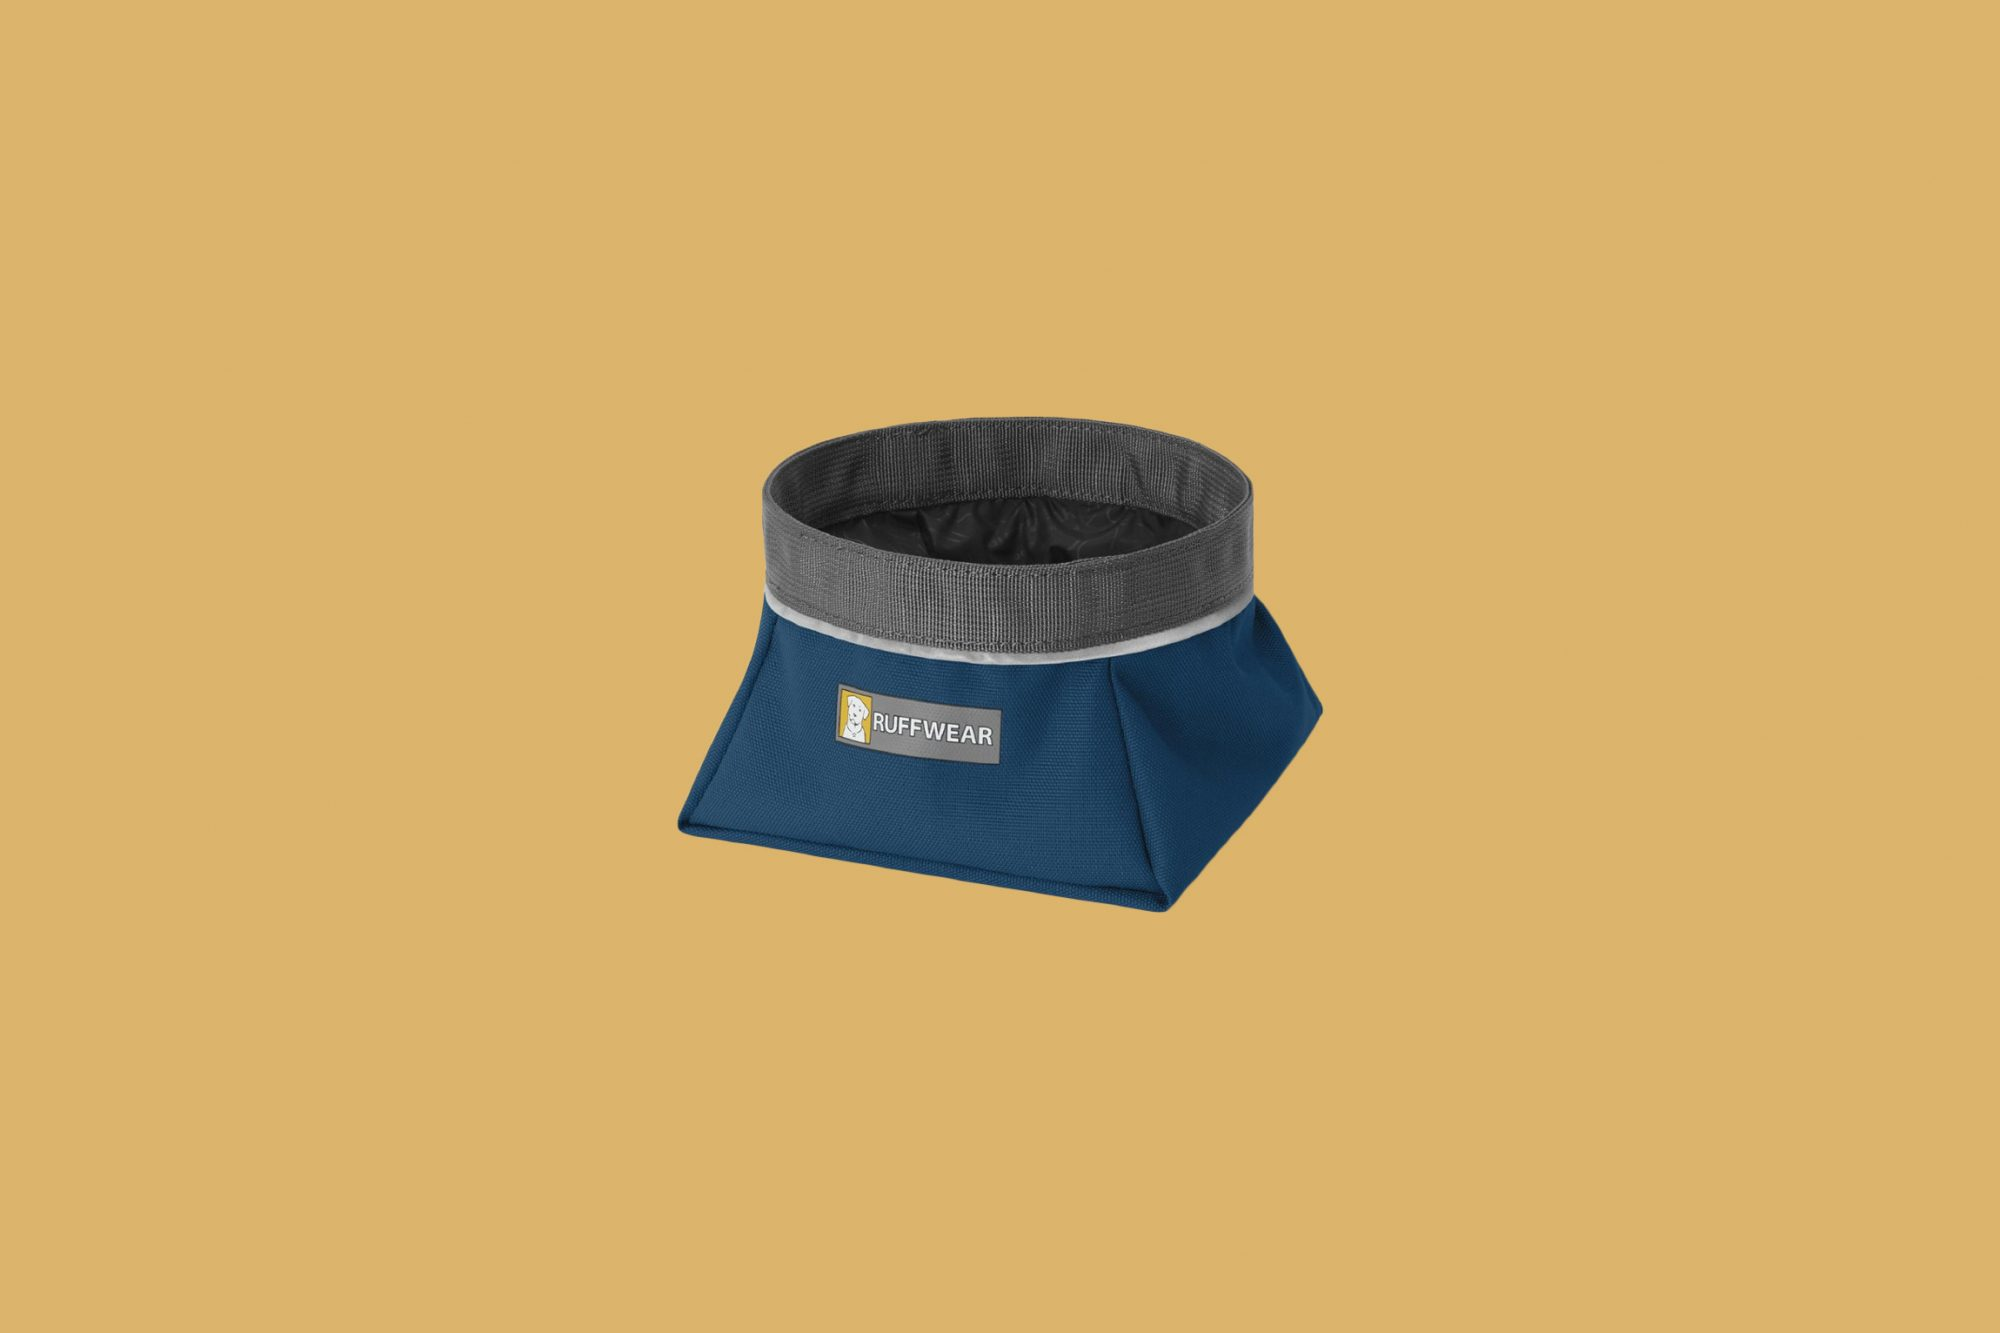 Ruffwear Quencher Dog Bowl, in Blue Moon